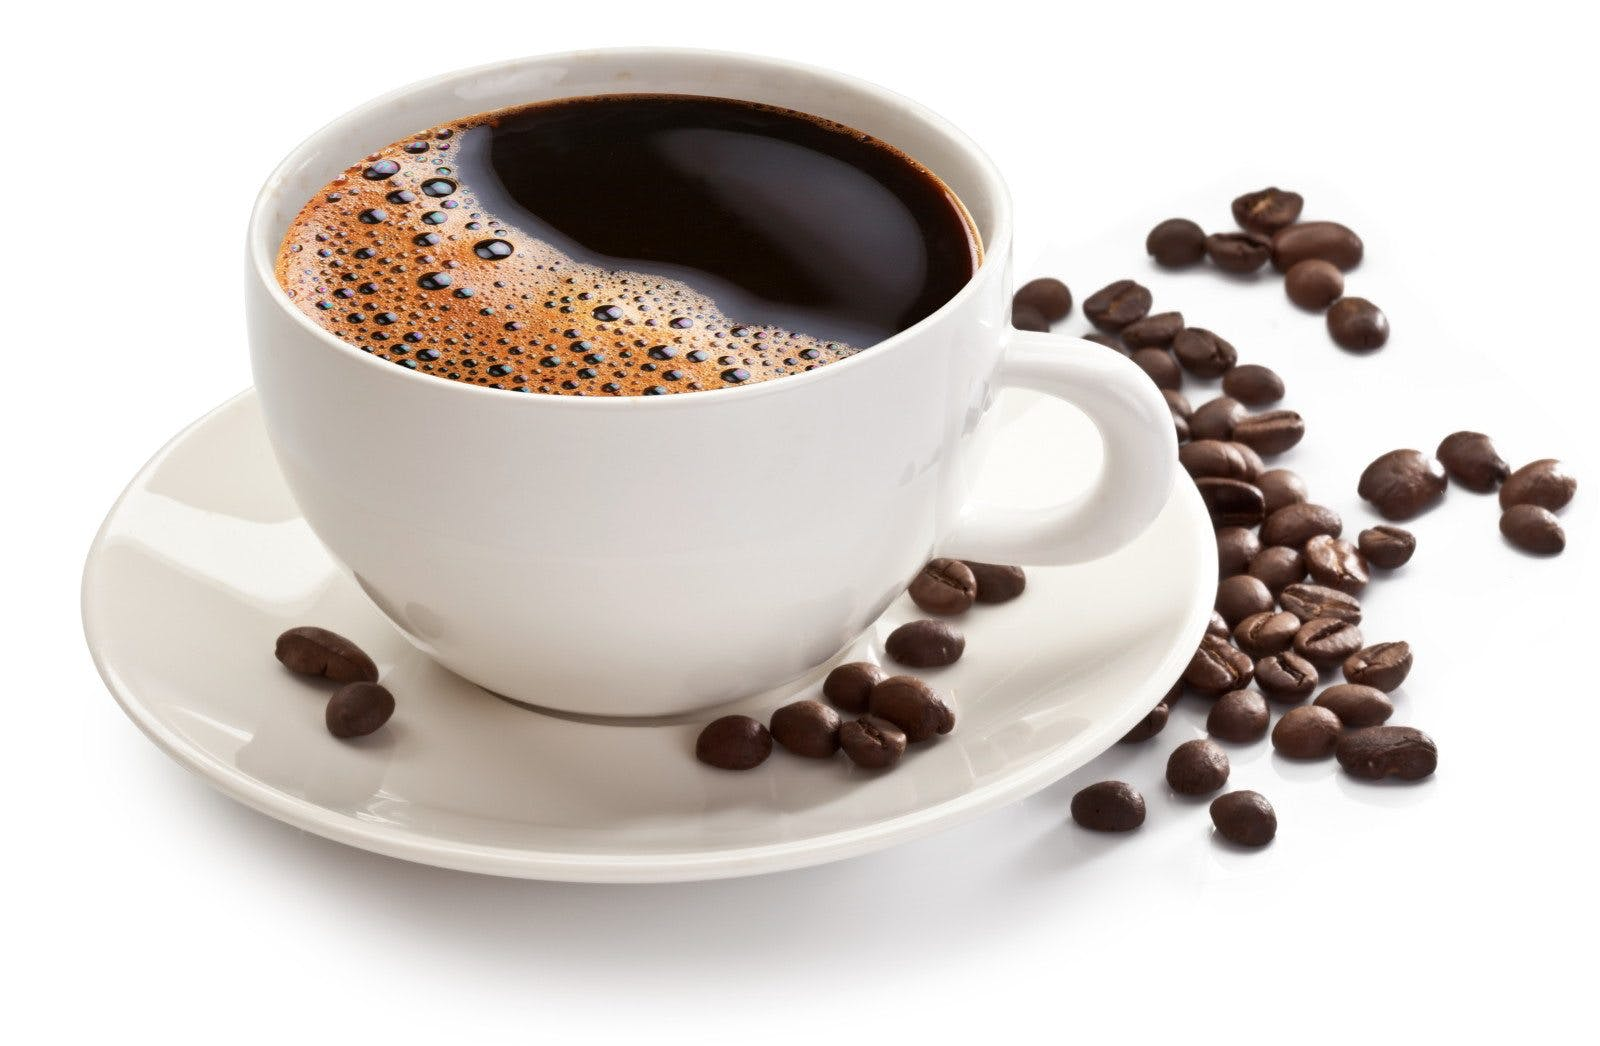 Does coffee raise blood sugar? Conclusion. - Diet Doctor